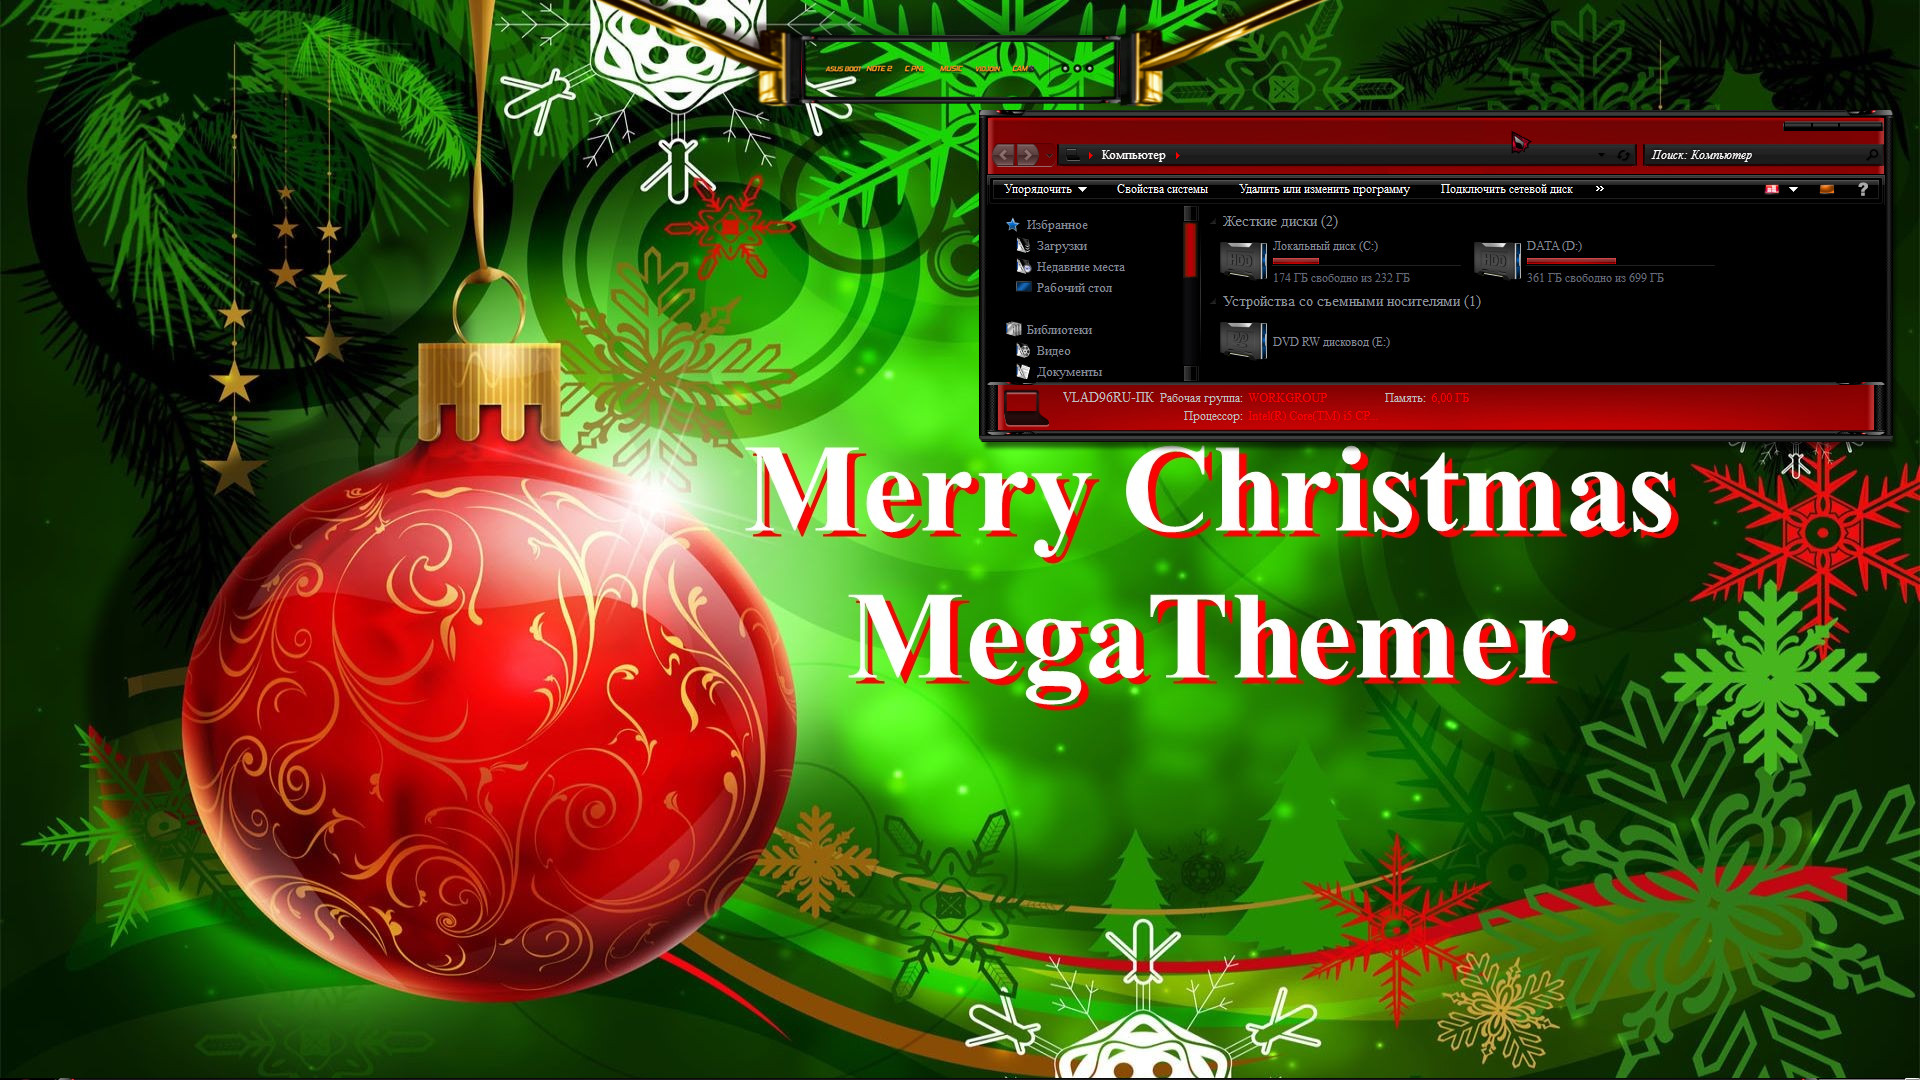 Merry Christmas Everyone by Tiger & O.E.